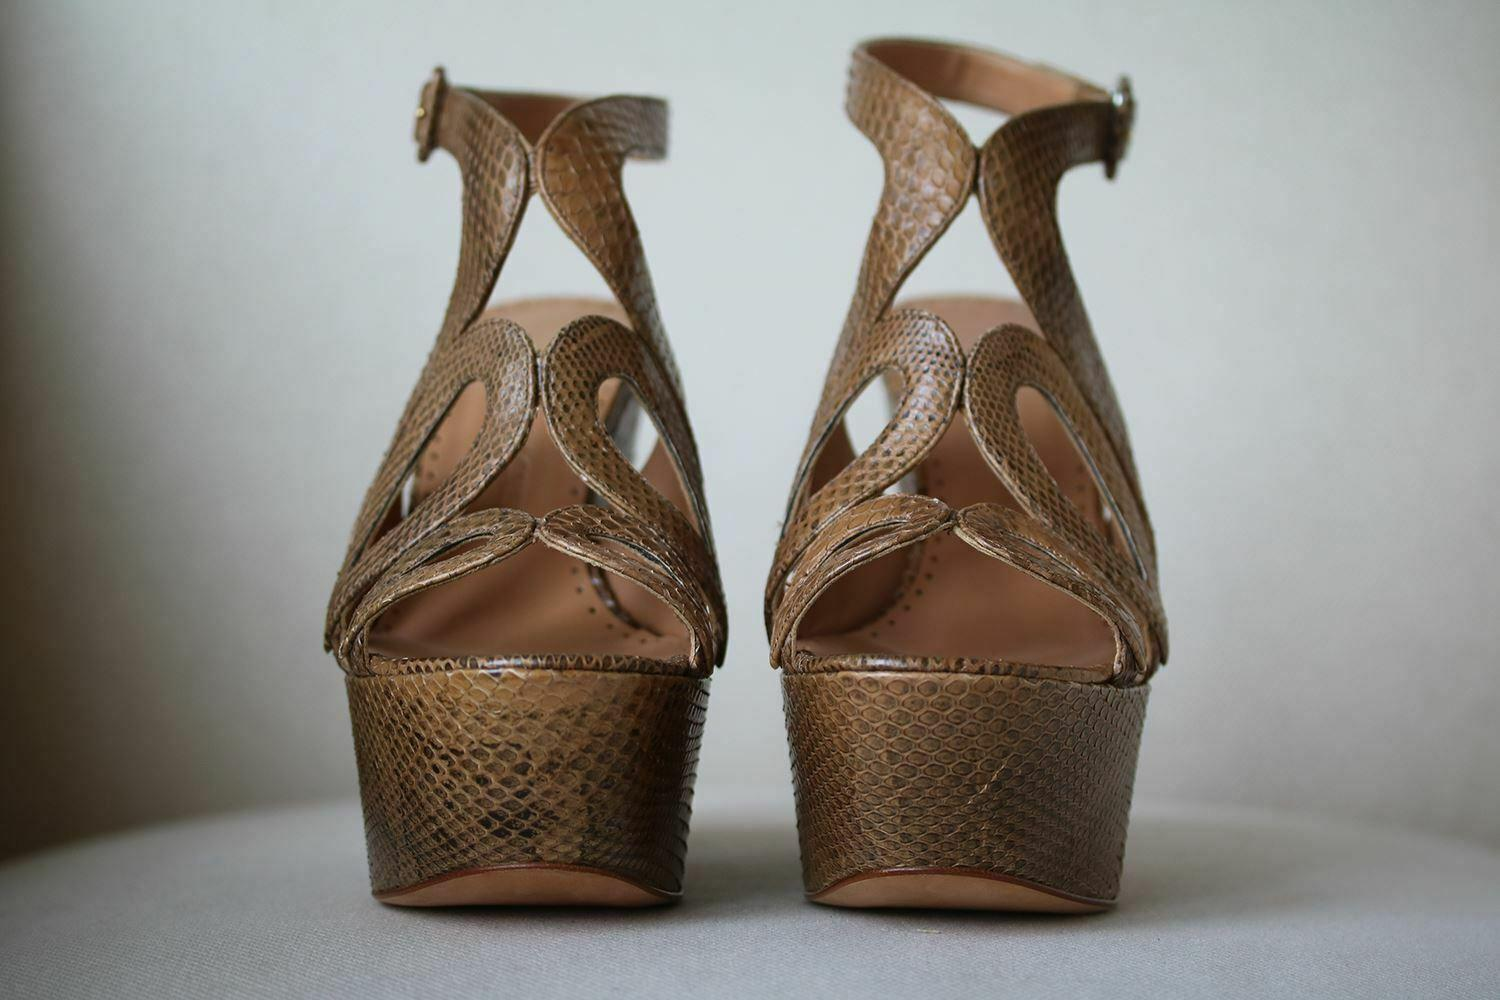 Out Ayers Wagner Alexa Snakeskin Wedges Cut LUGzVjqMpS